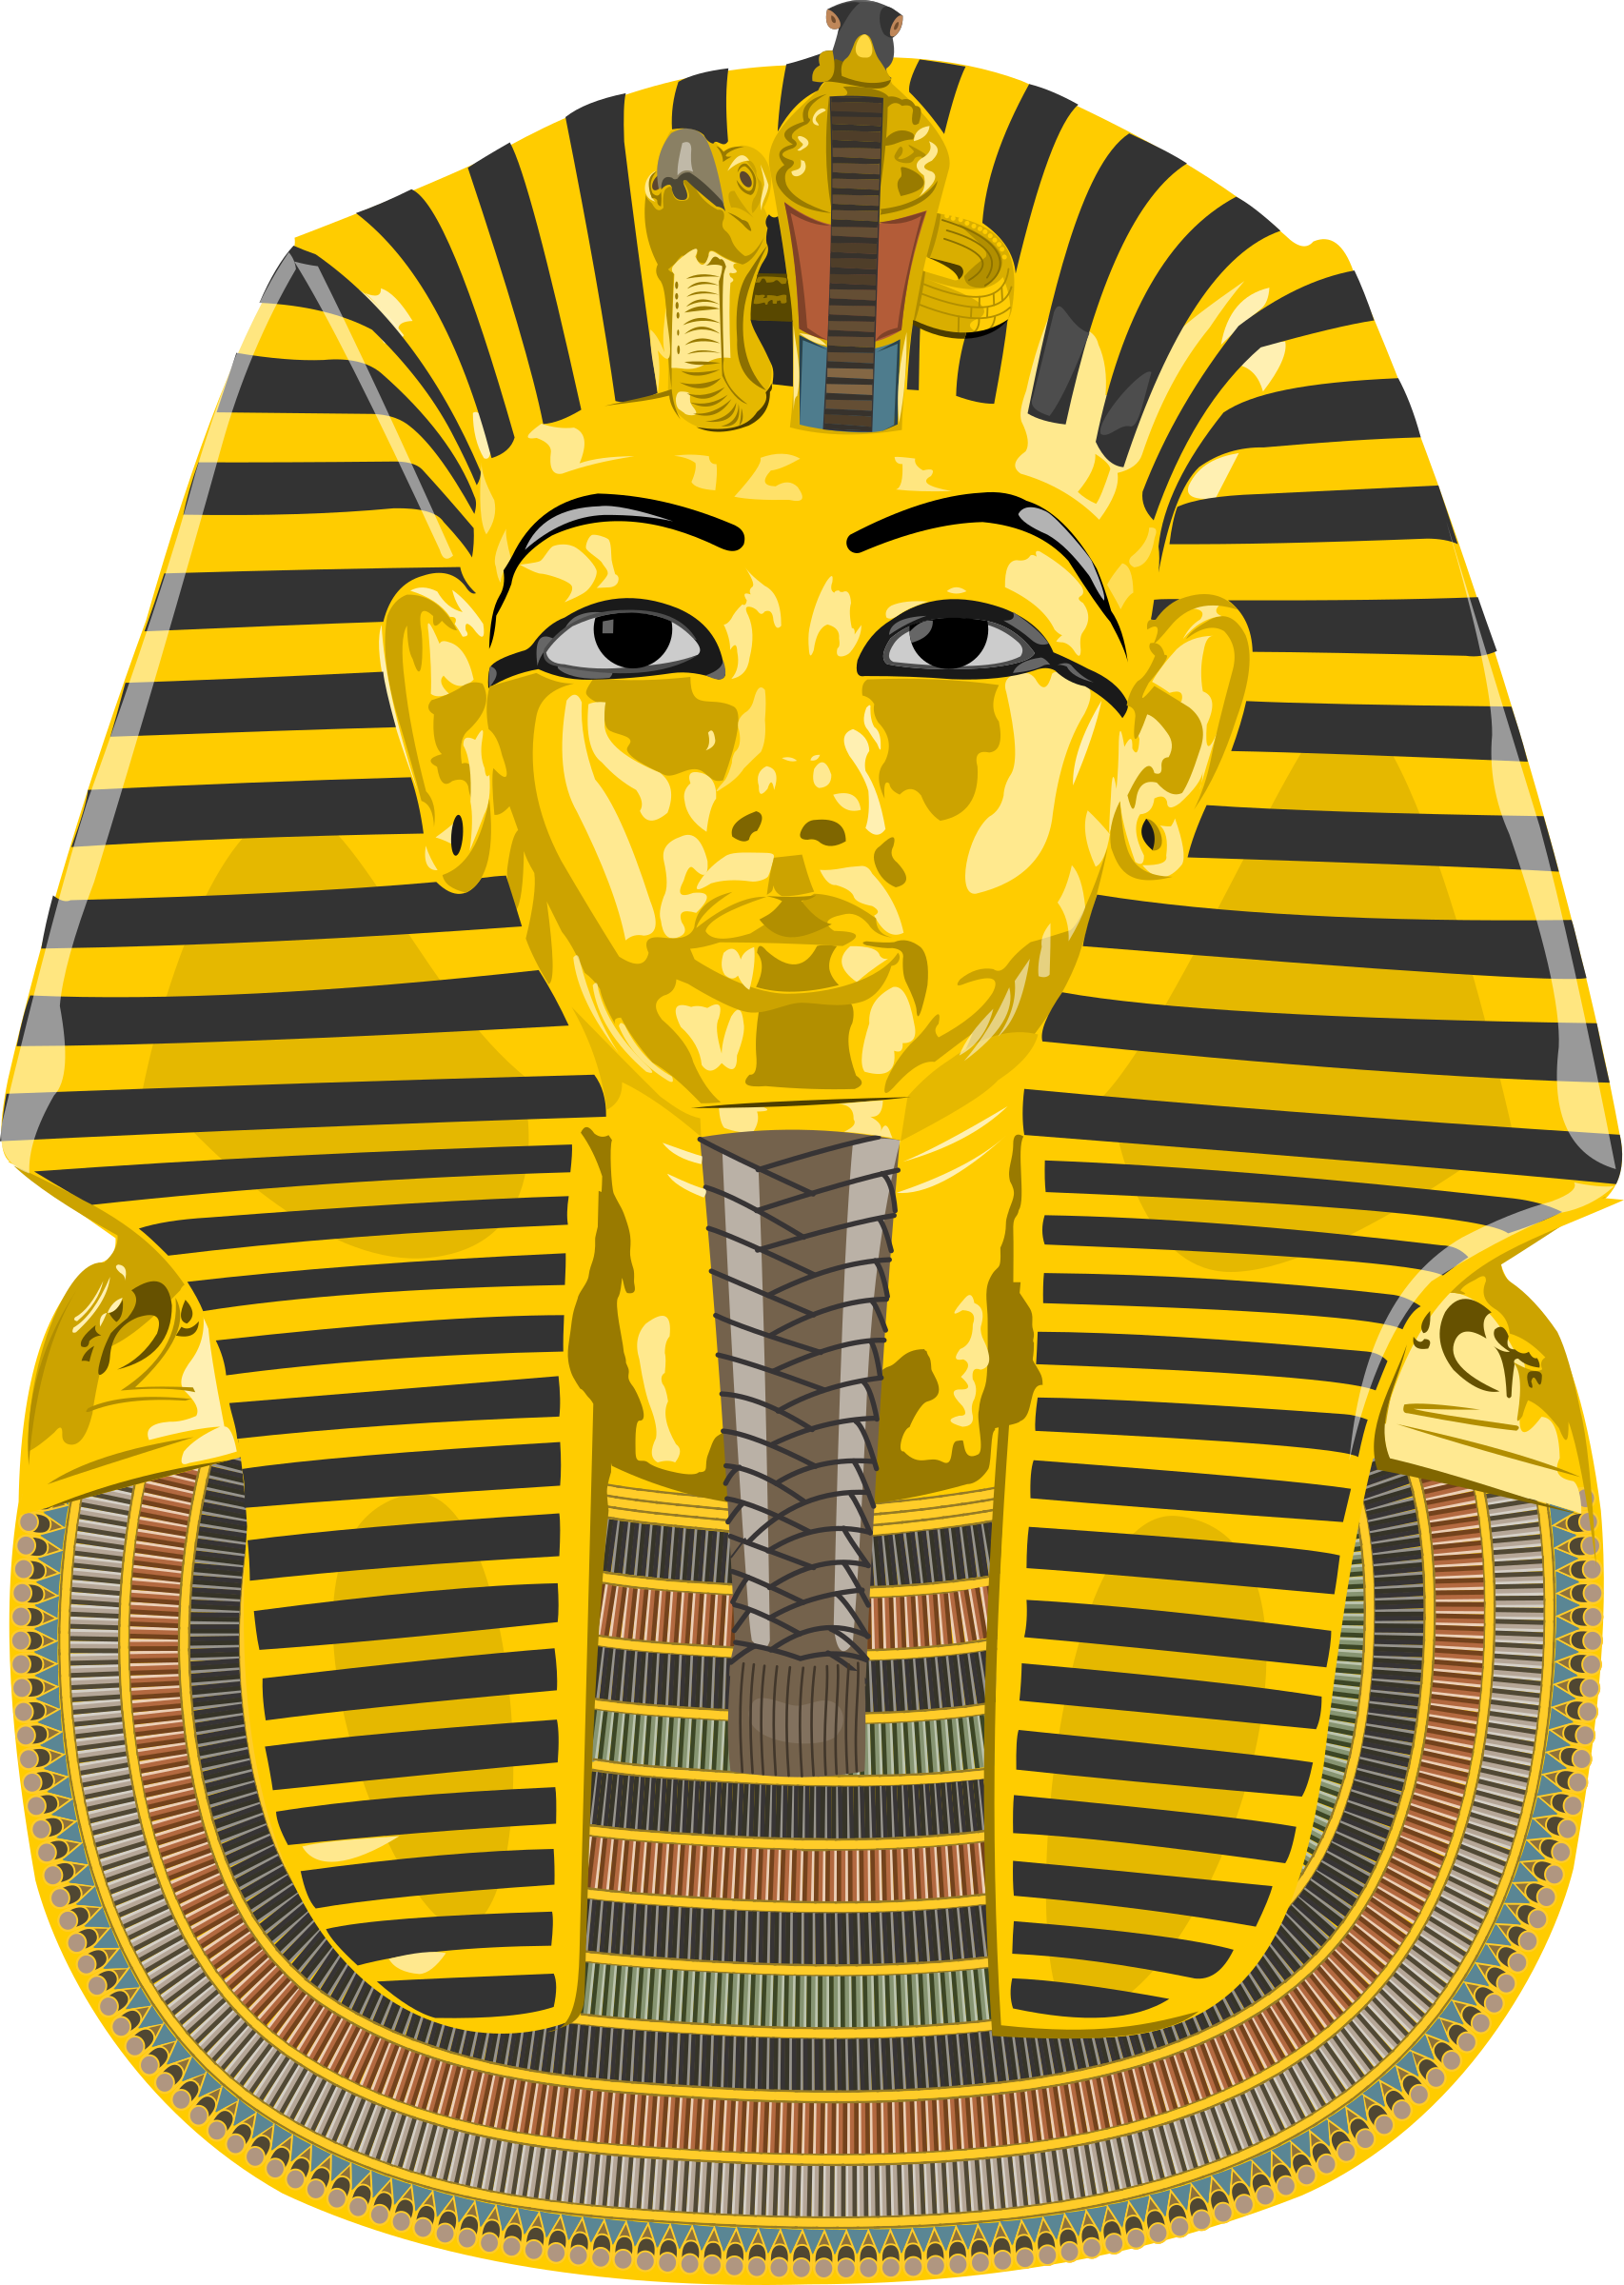 King Tut by gustavorezende